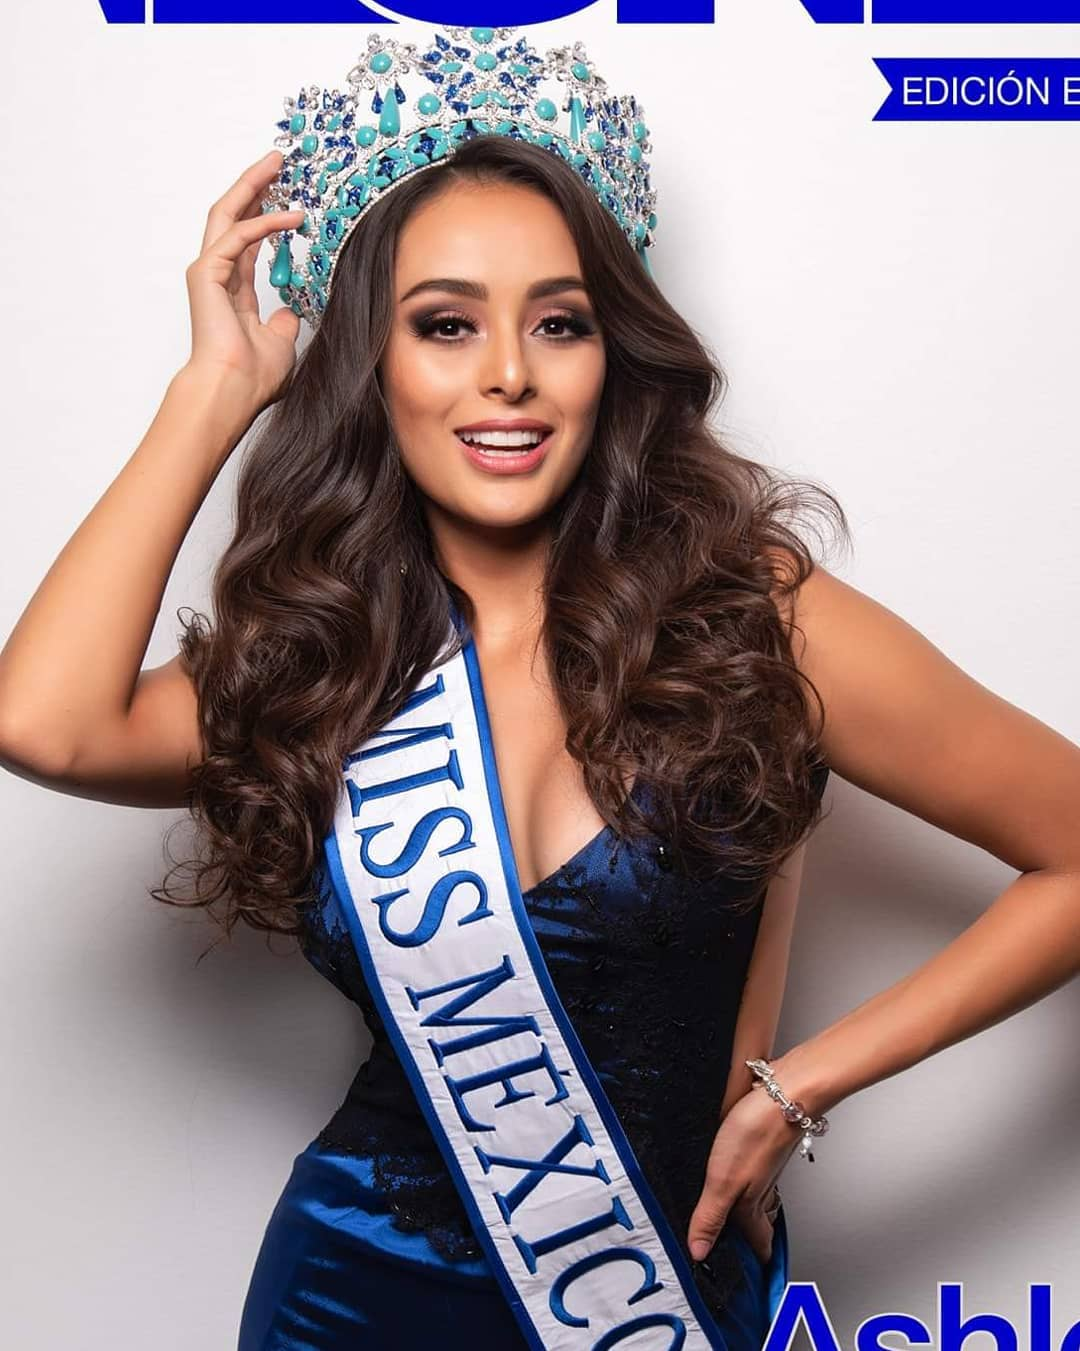 ashley alvidrez, top 12 de miss world 2019. 71108610